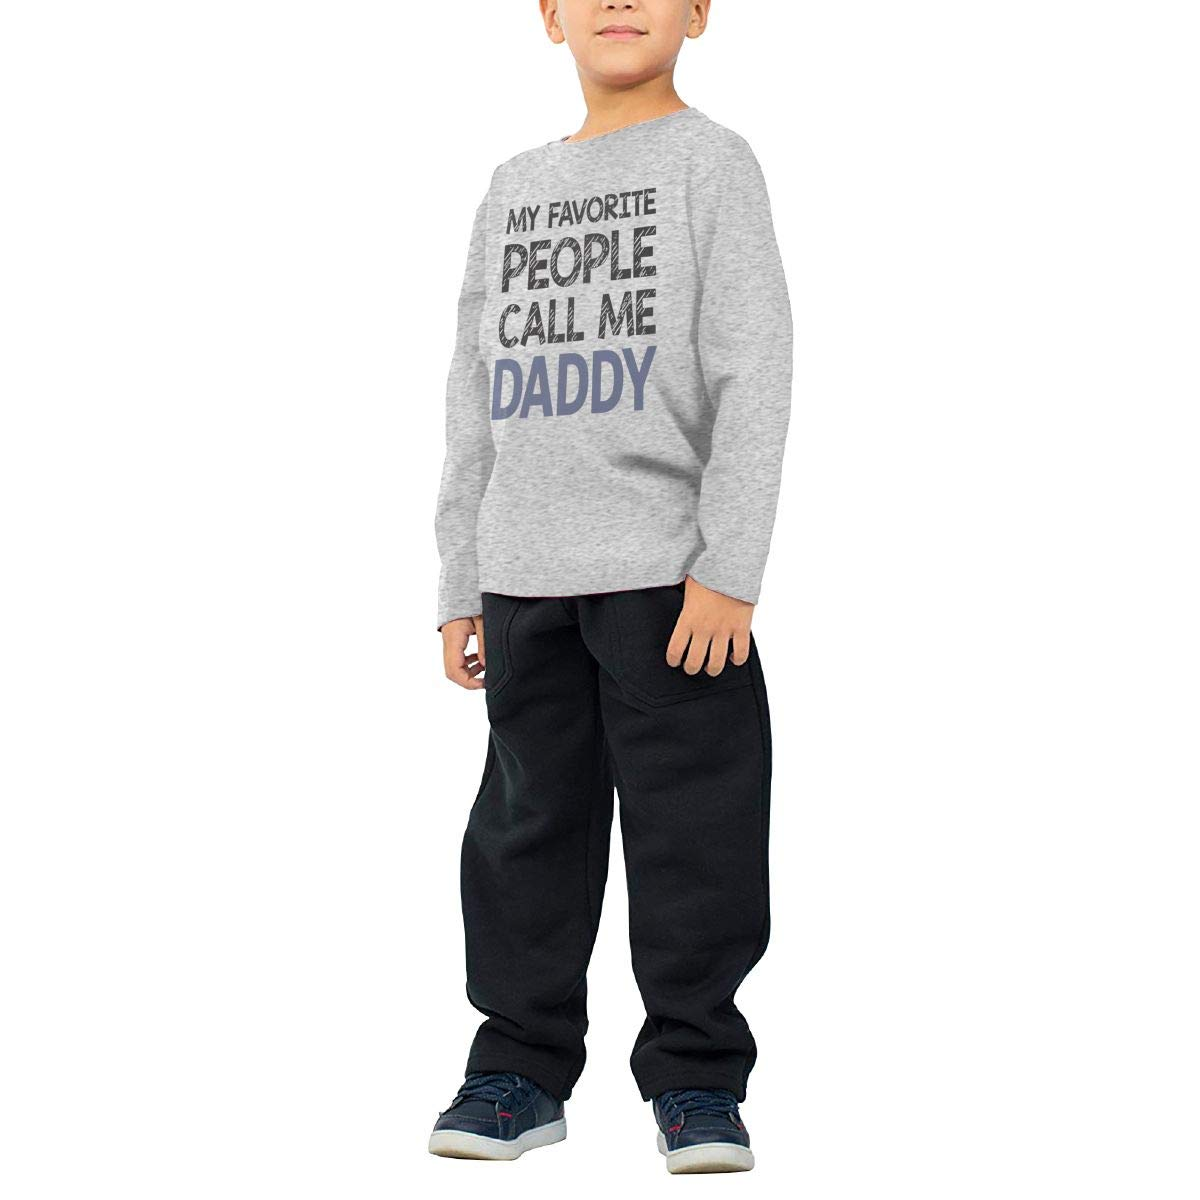 SKYAKLJA My Favorite People Call Me Daddy Childrens Gray Cotton Long Sleeve Round Neck T-Shirt for Boy Or Girl